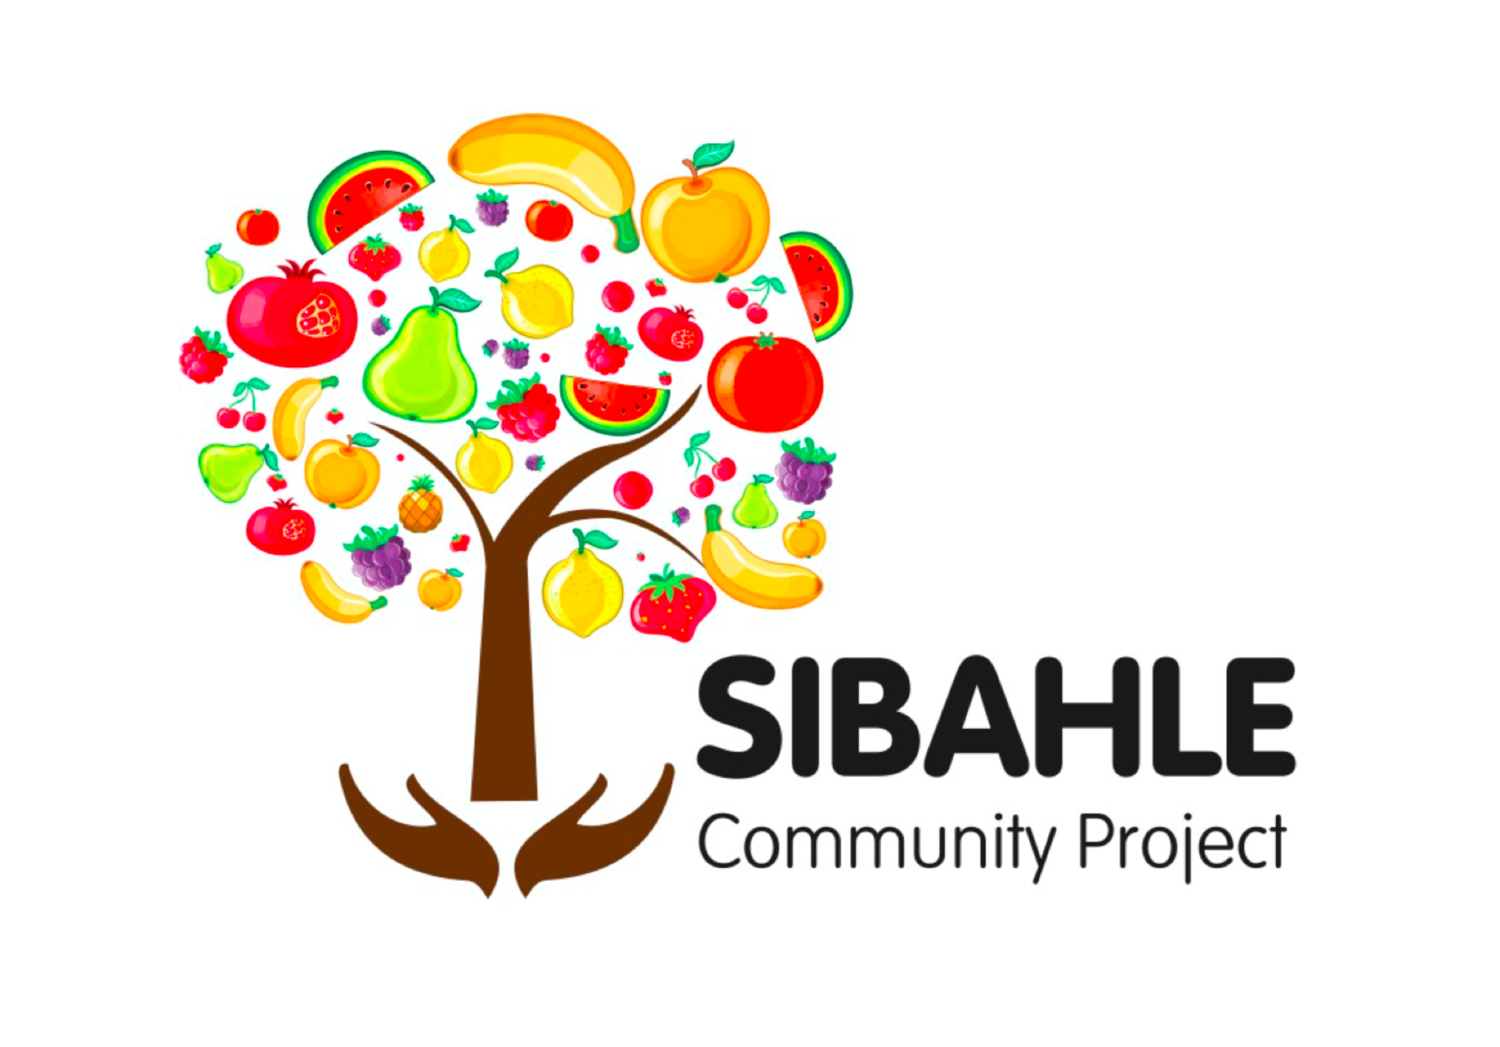 Sibahle Community Project